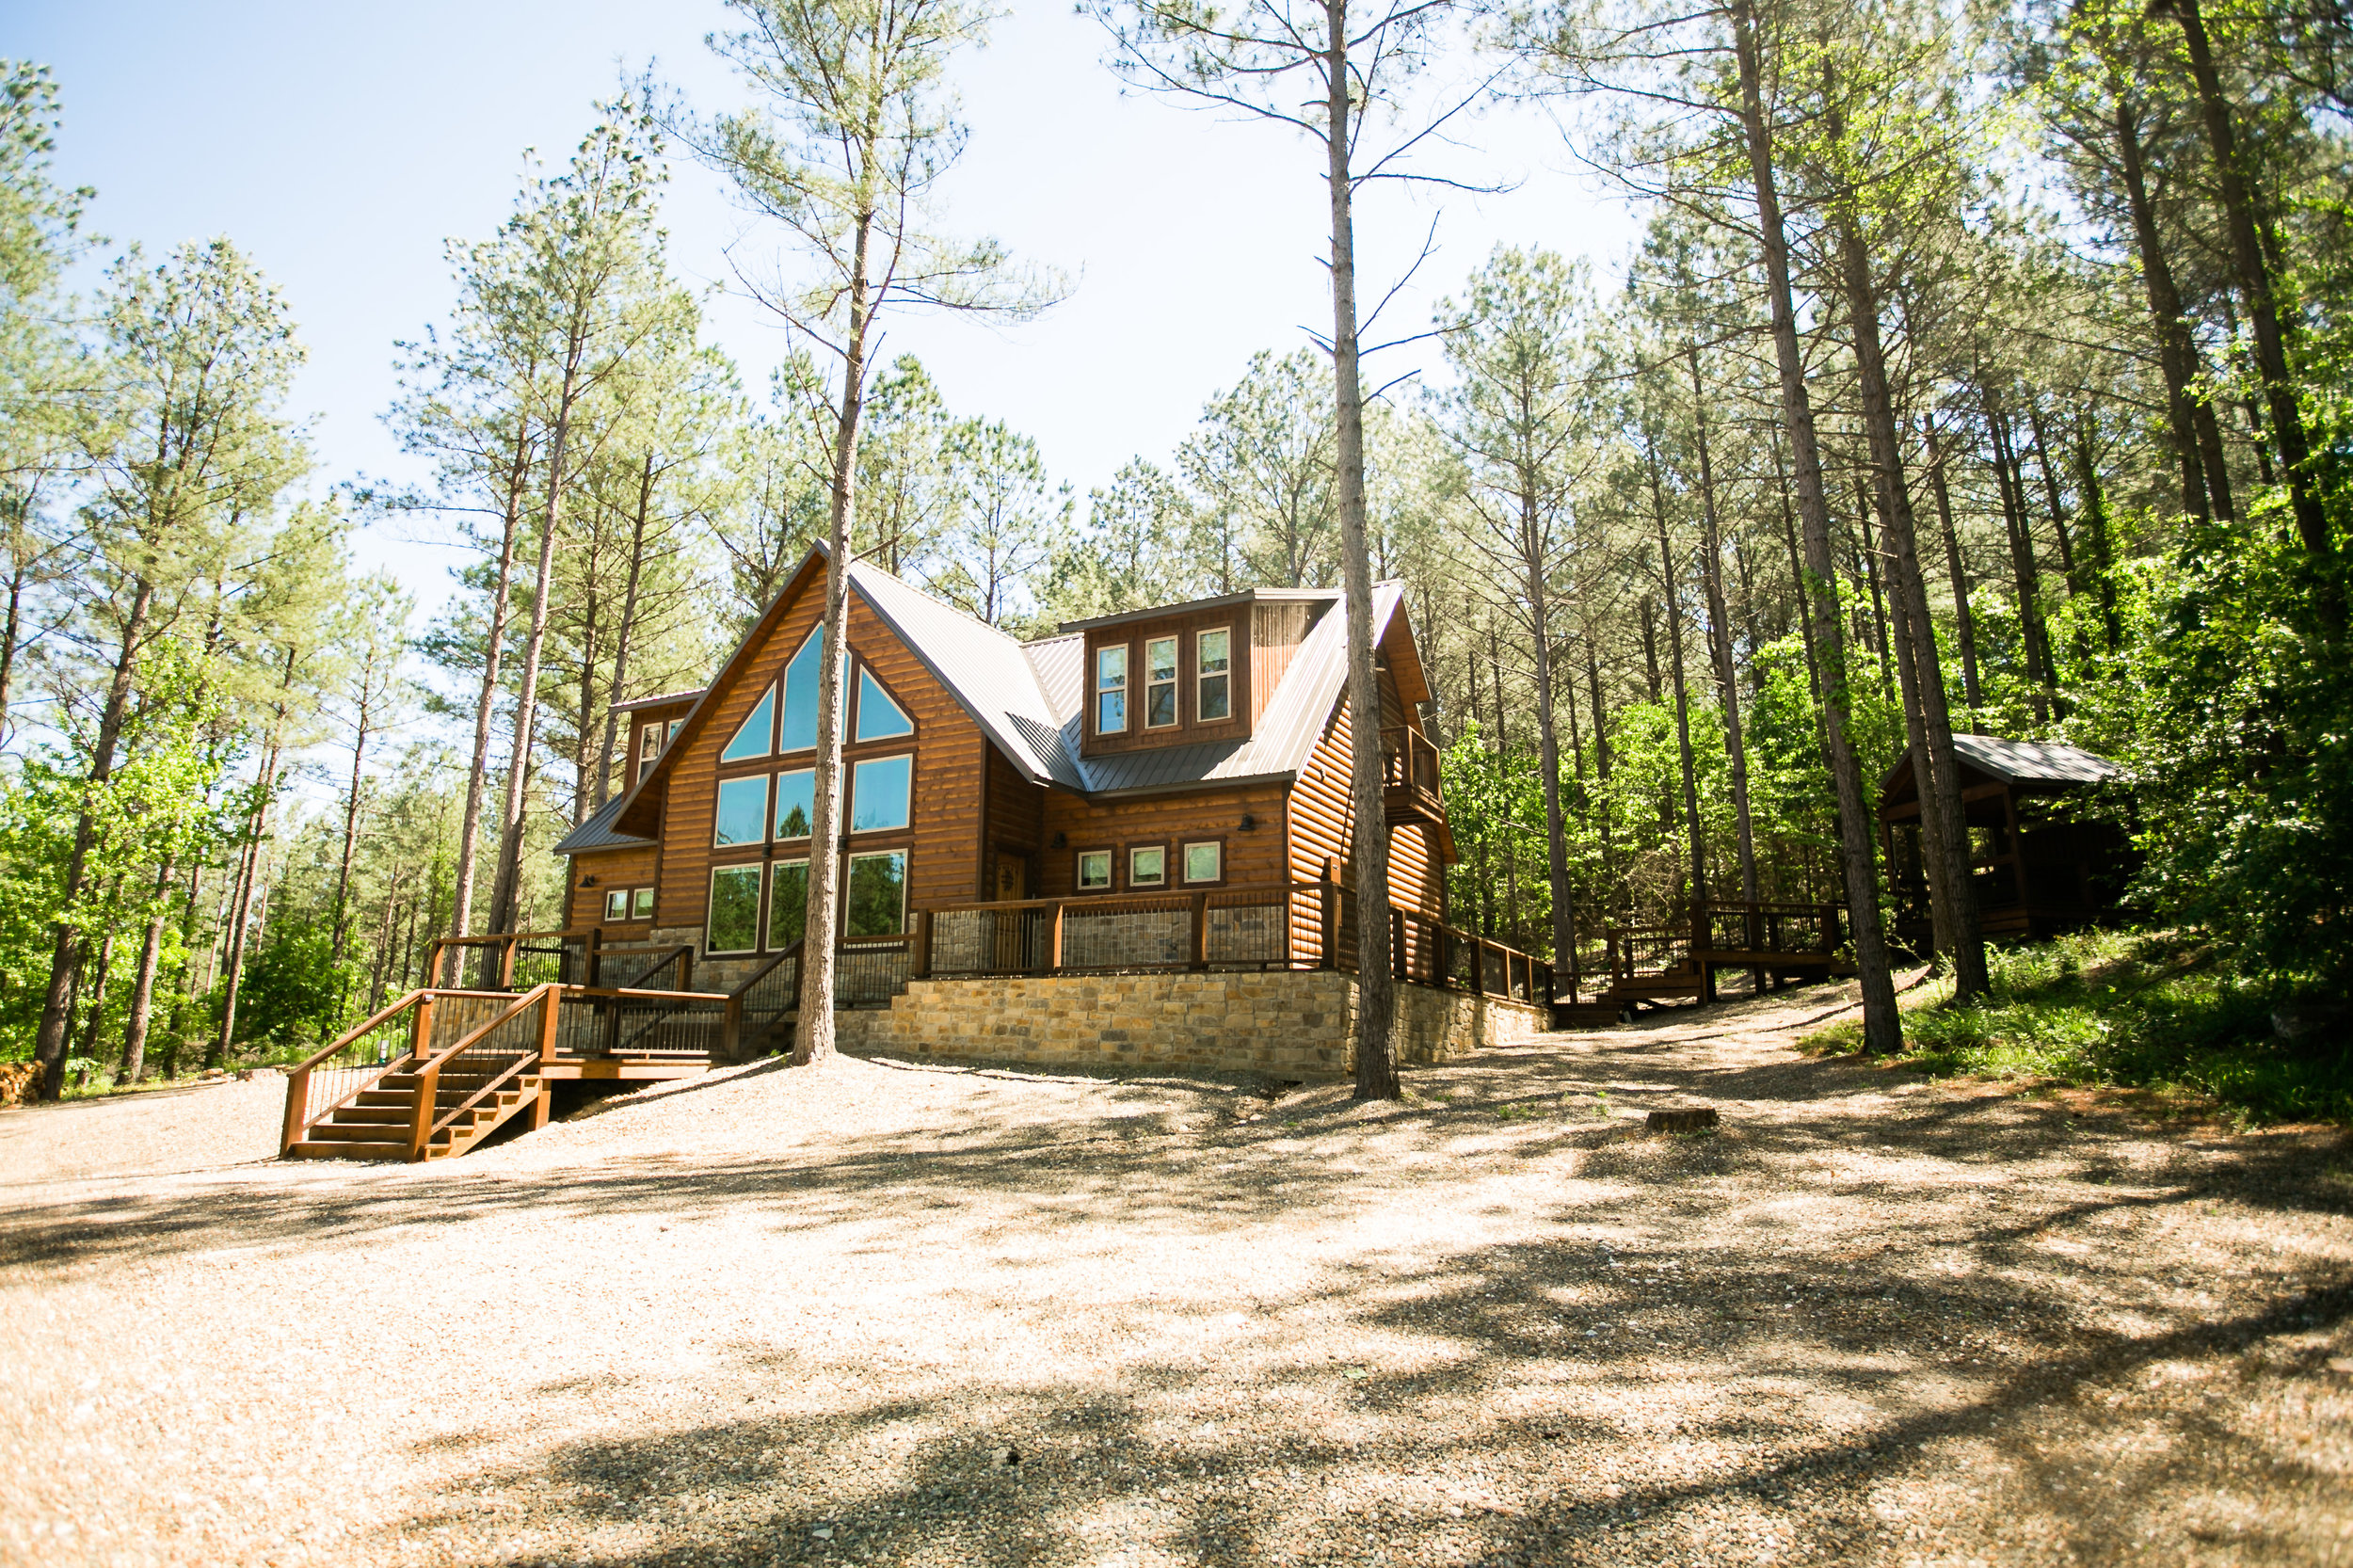 vacation spots driving distance of okc tulsa oklahoma city broken bow lake hochatown steven's gap luxury cabins hiking adventure awaits modern cabin rustic